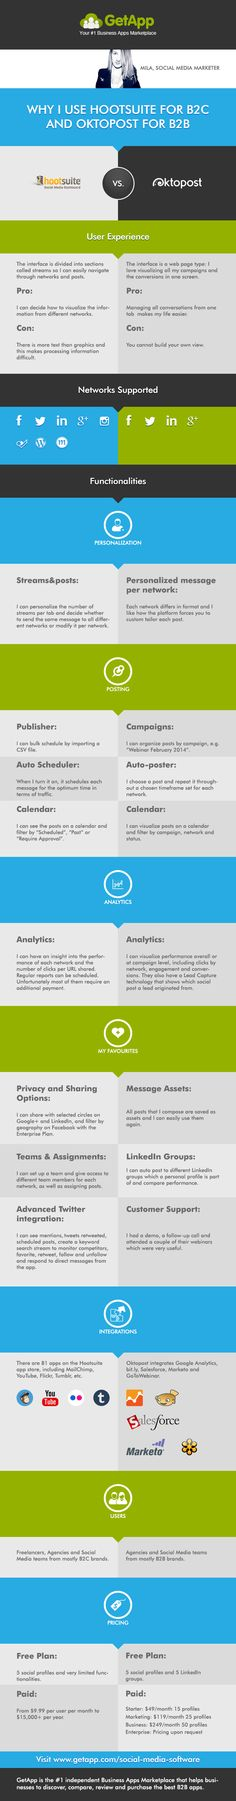 """""""Why I use Hootsuit for B2V and Oktopost for B2B"""" Anyone here use #Oktopost? #Infographic"""